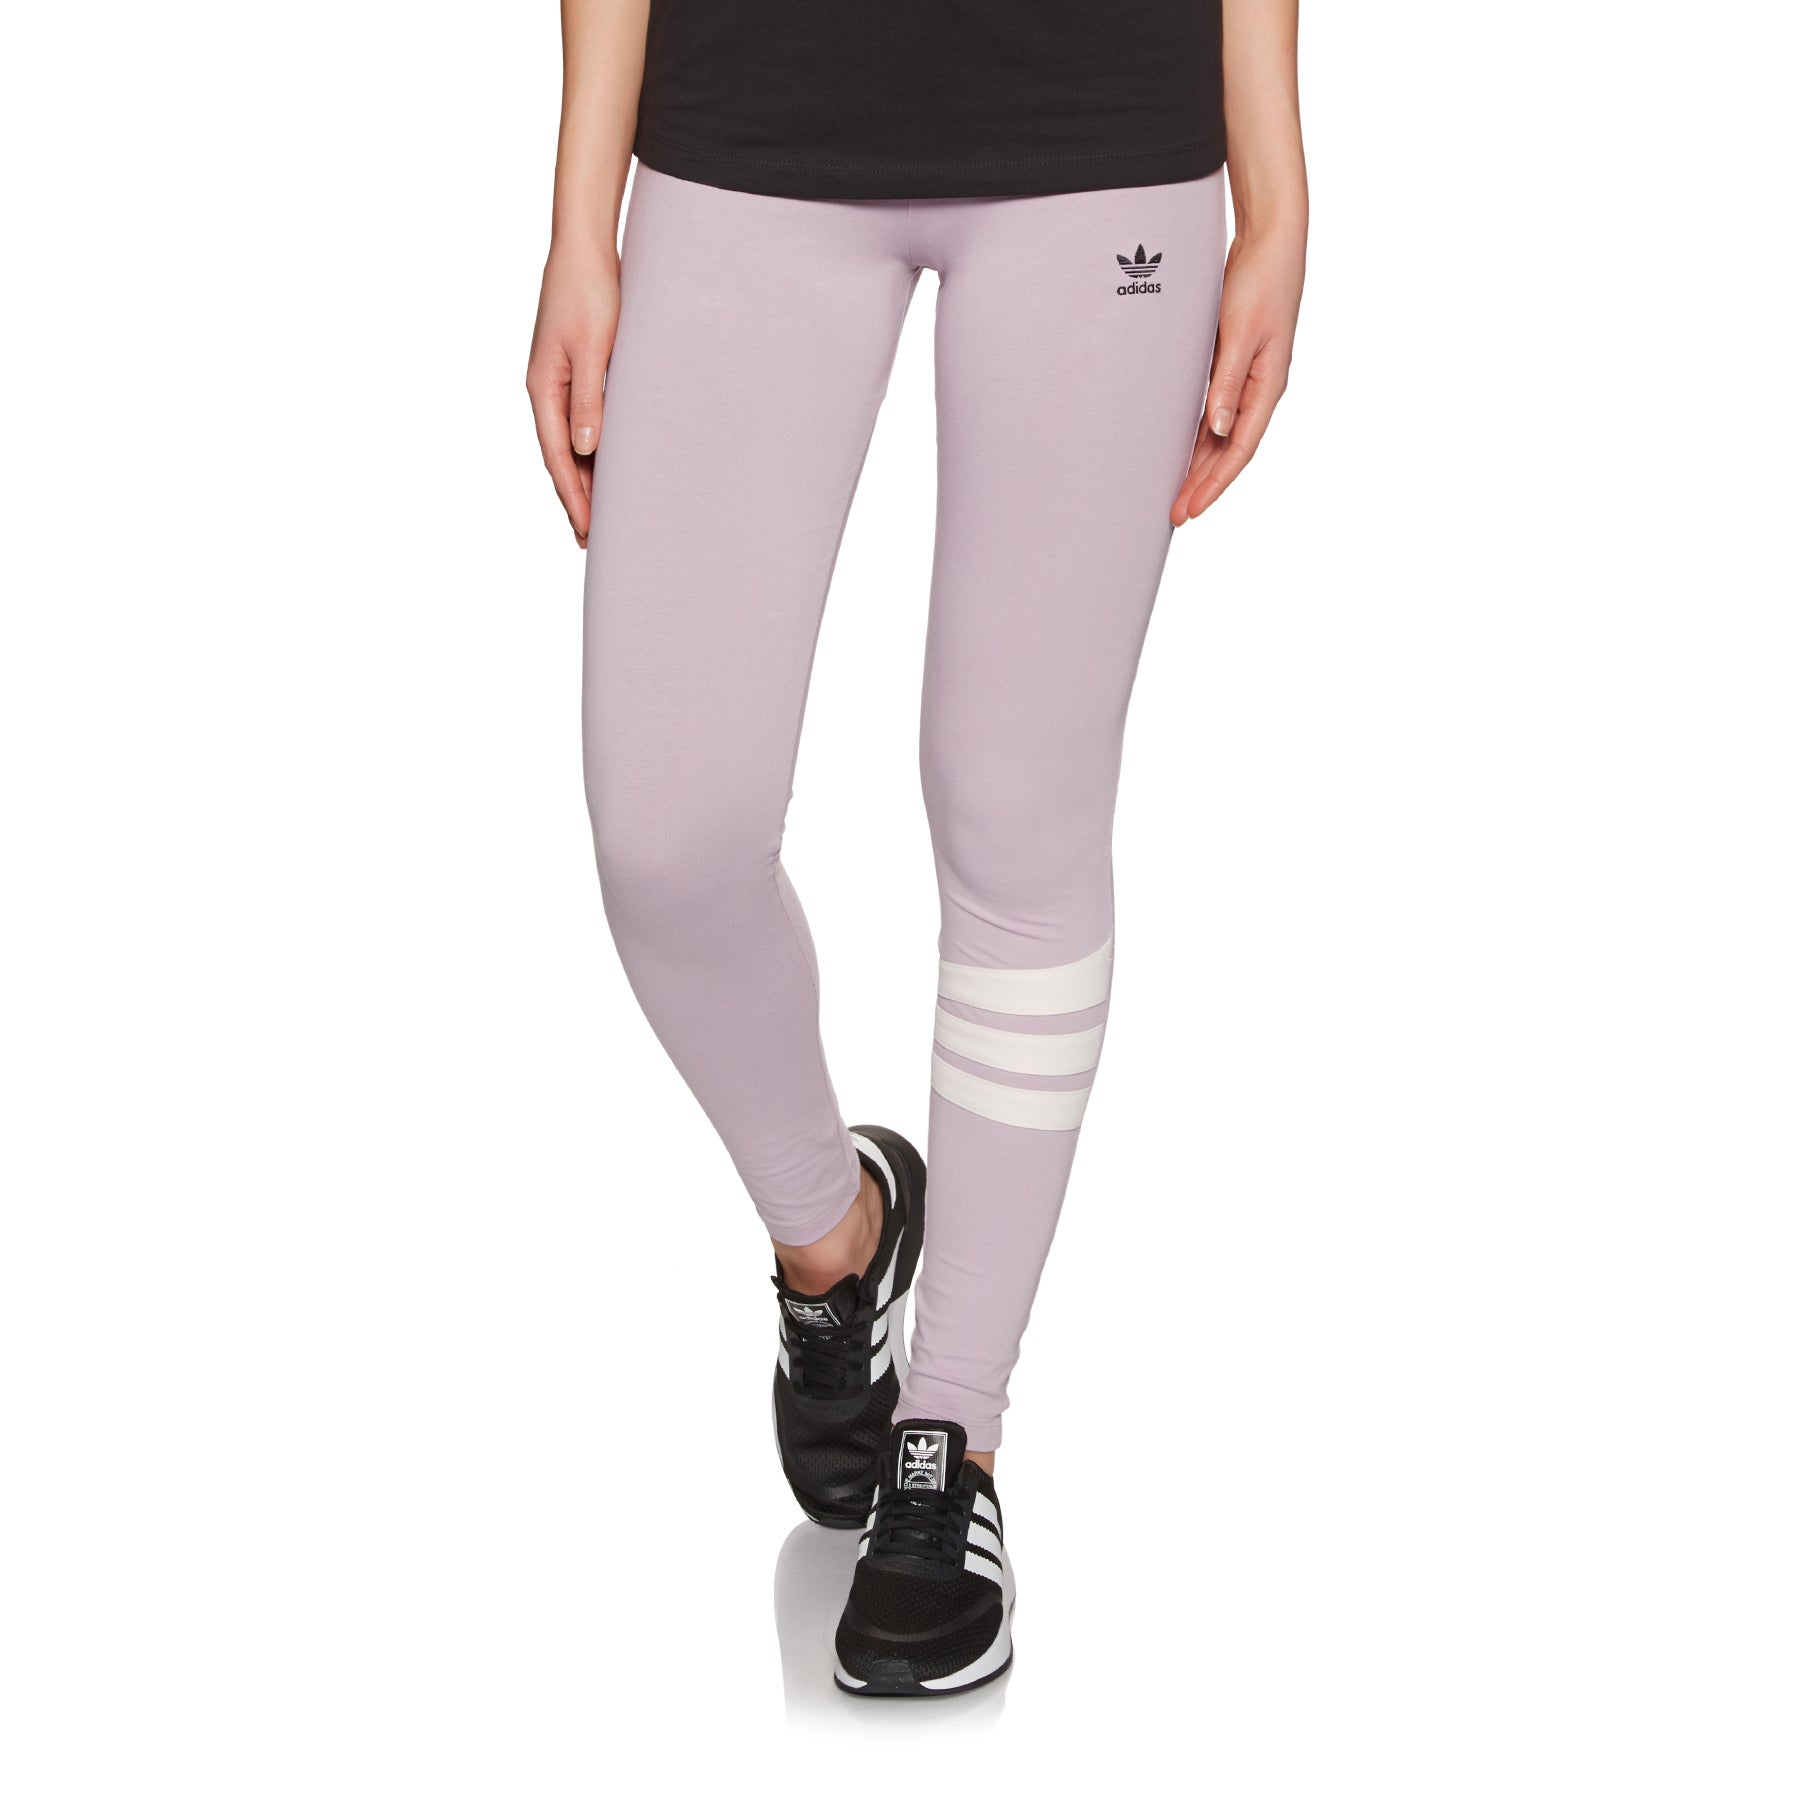 Leggings Adidas Originals Tights - Soft Vision Black